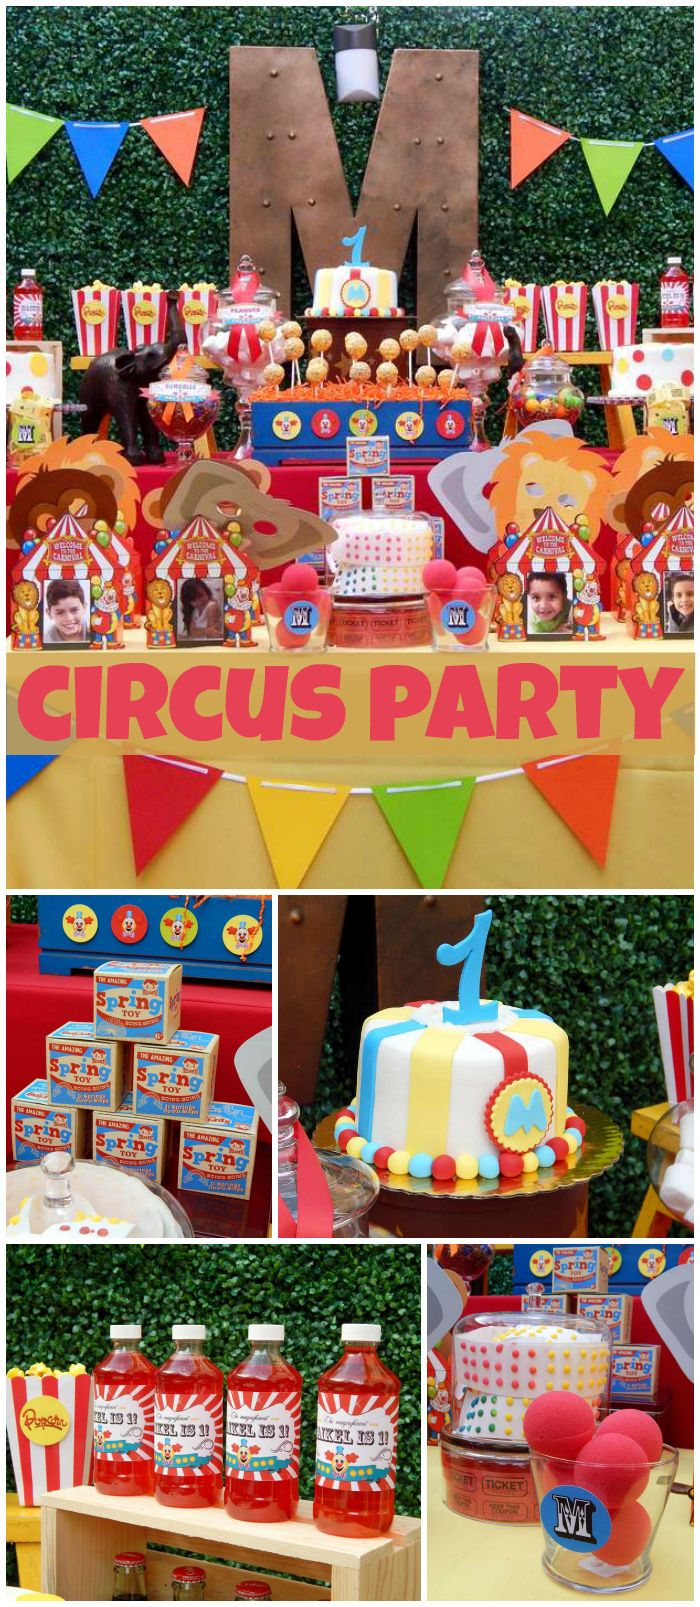 decor for themed party birthday design theme white boys decorations ideas girls red adults classic circus home carnival themes furniture